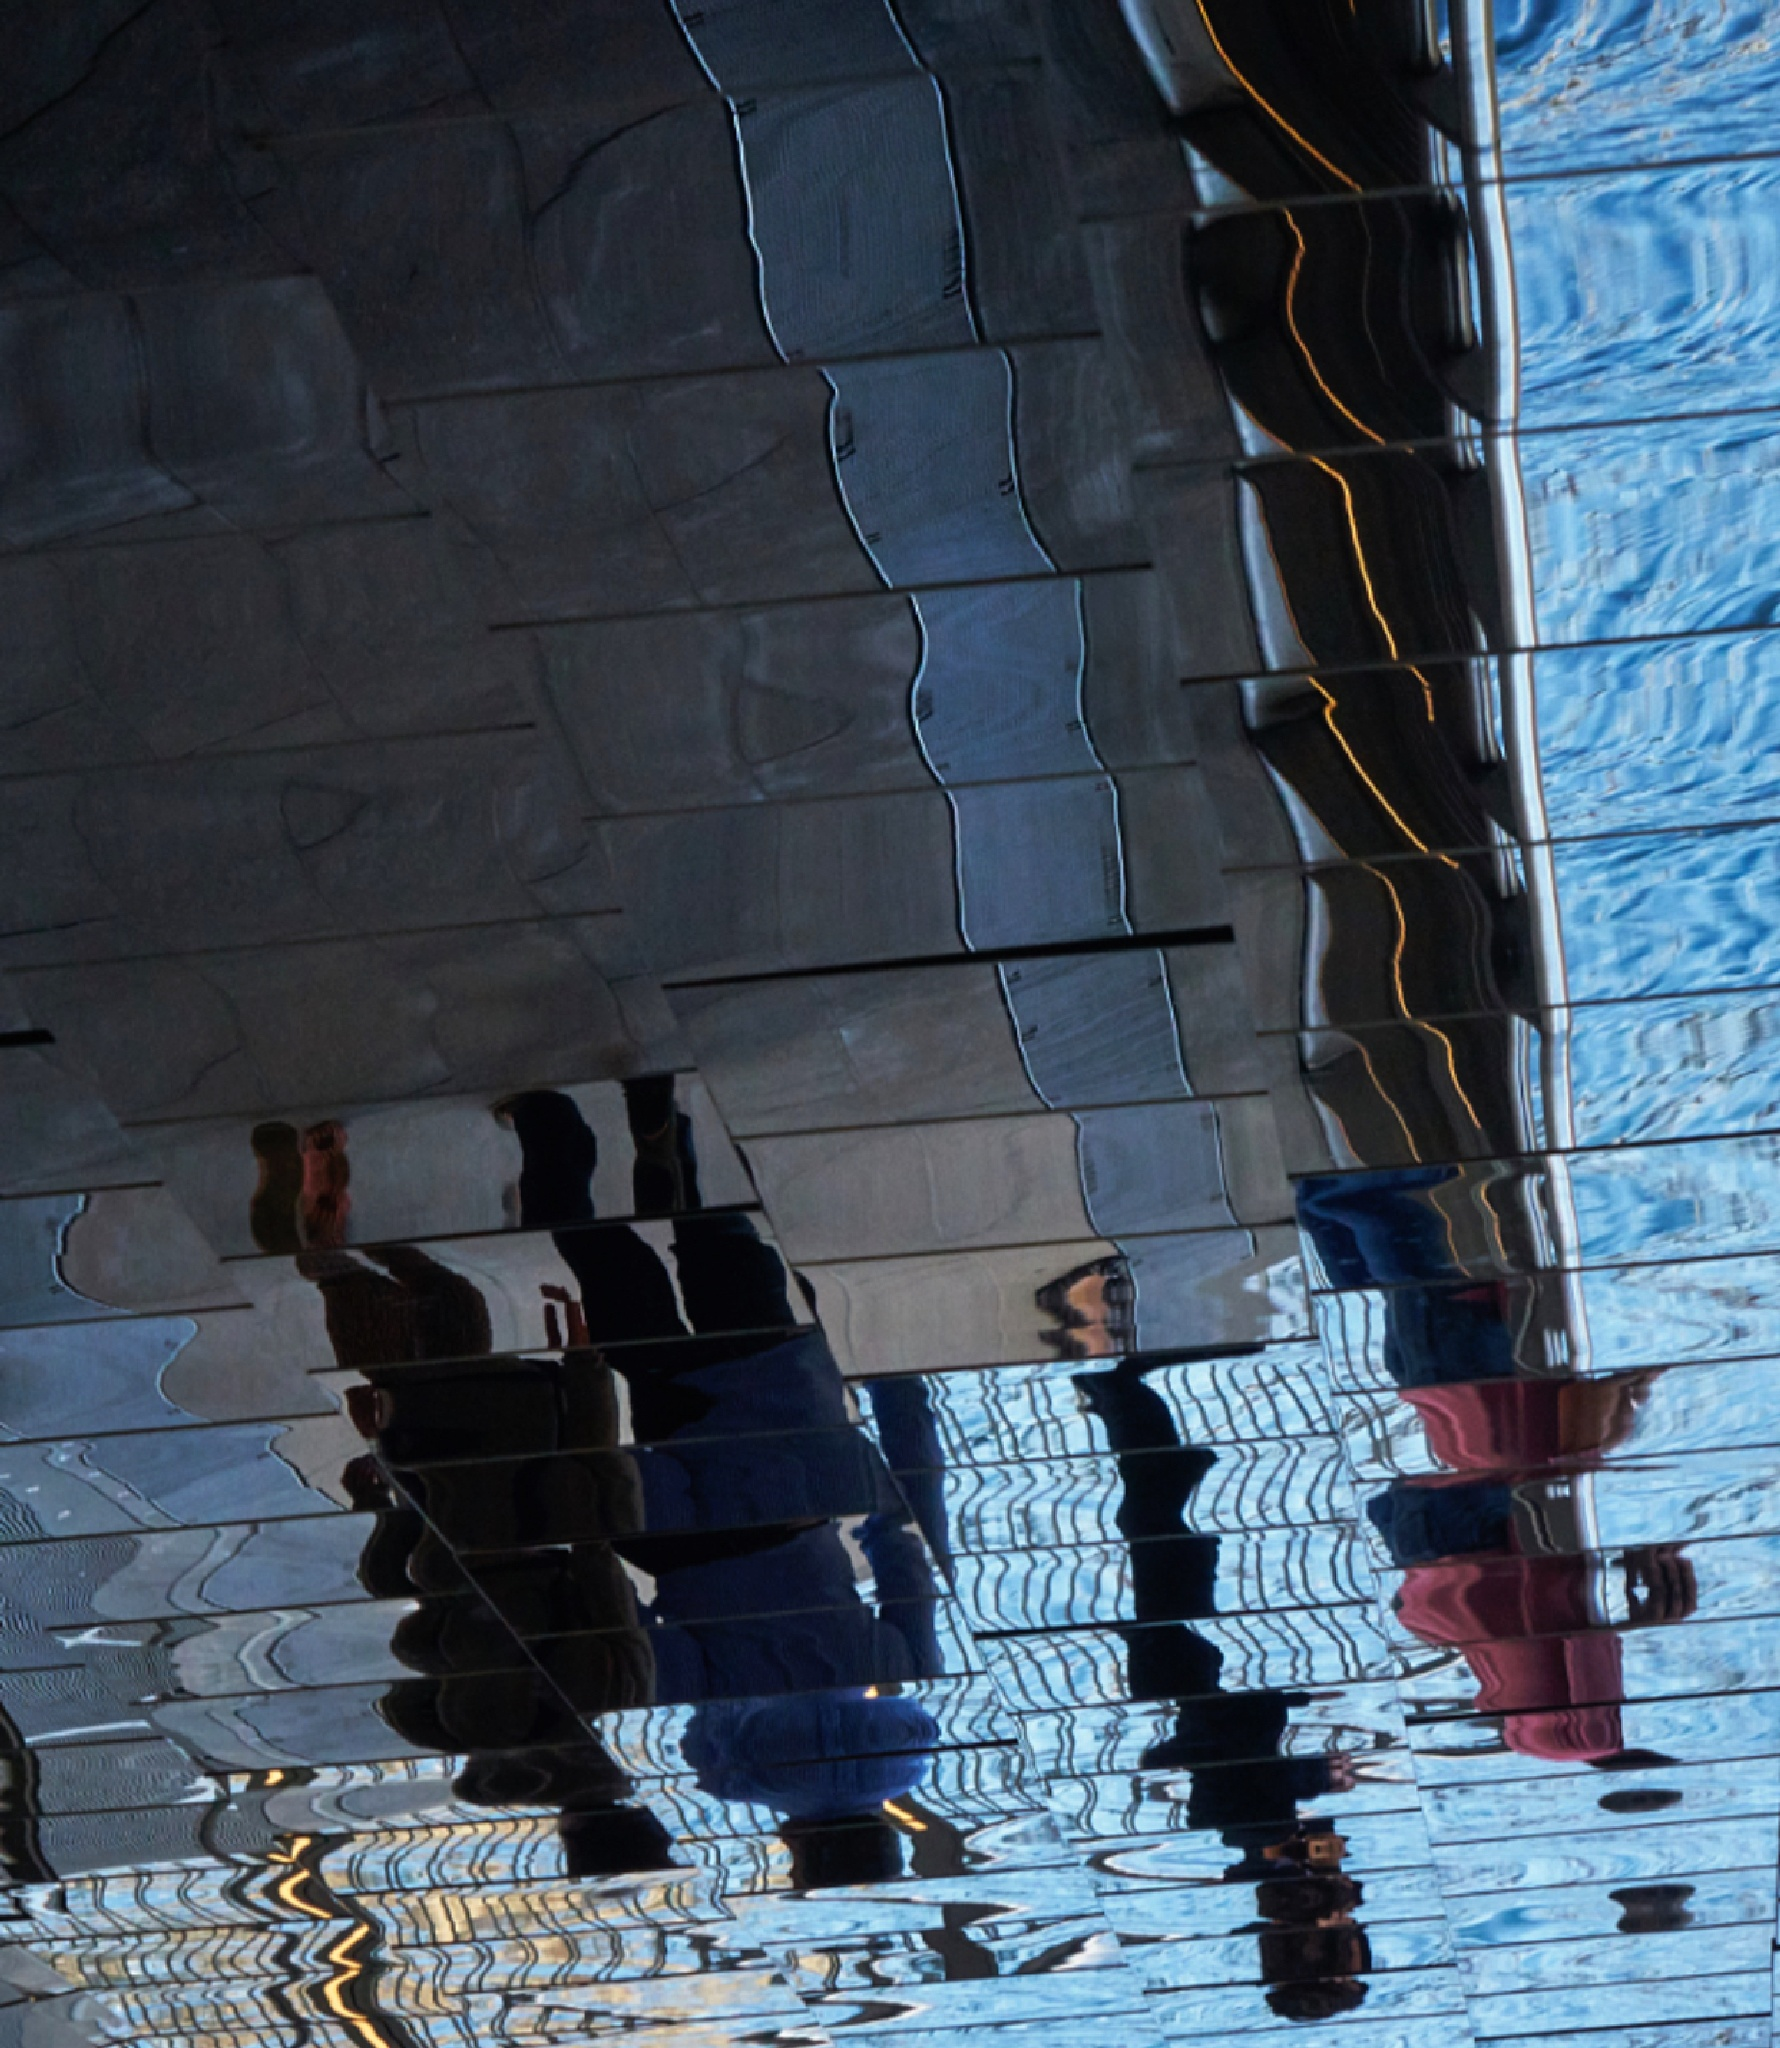 Looking up, Reflections by awish2c